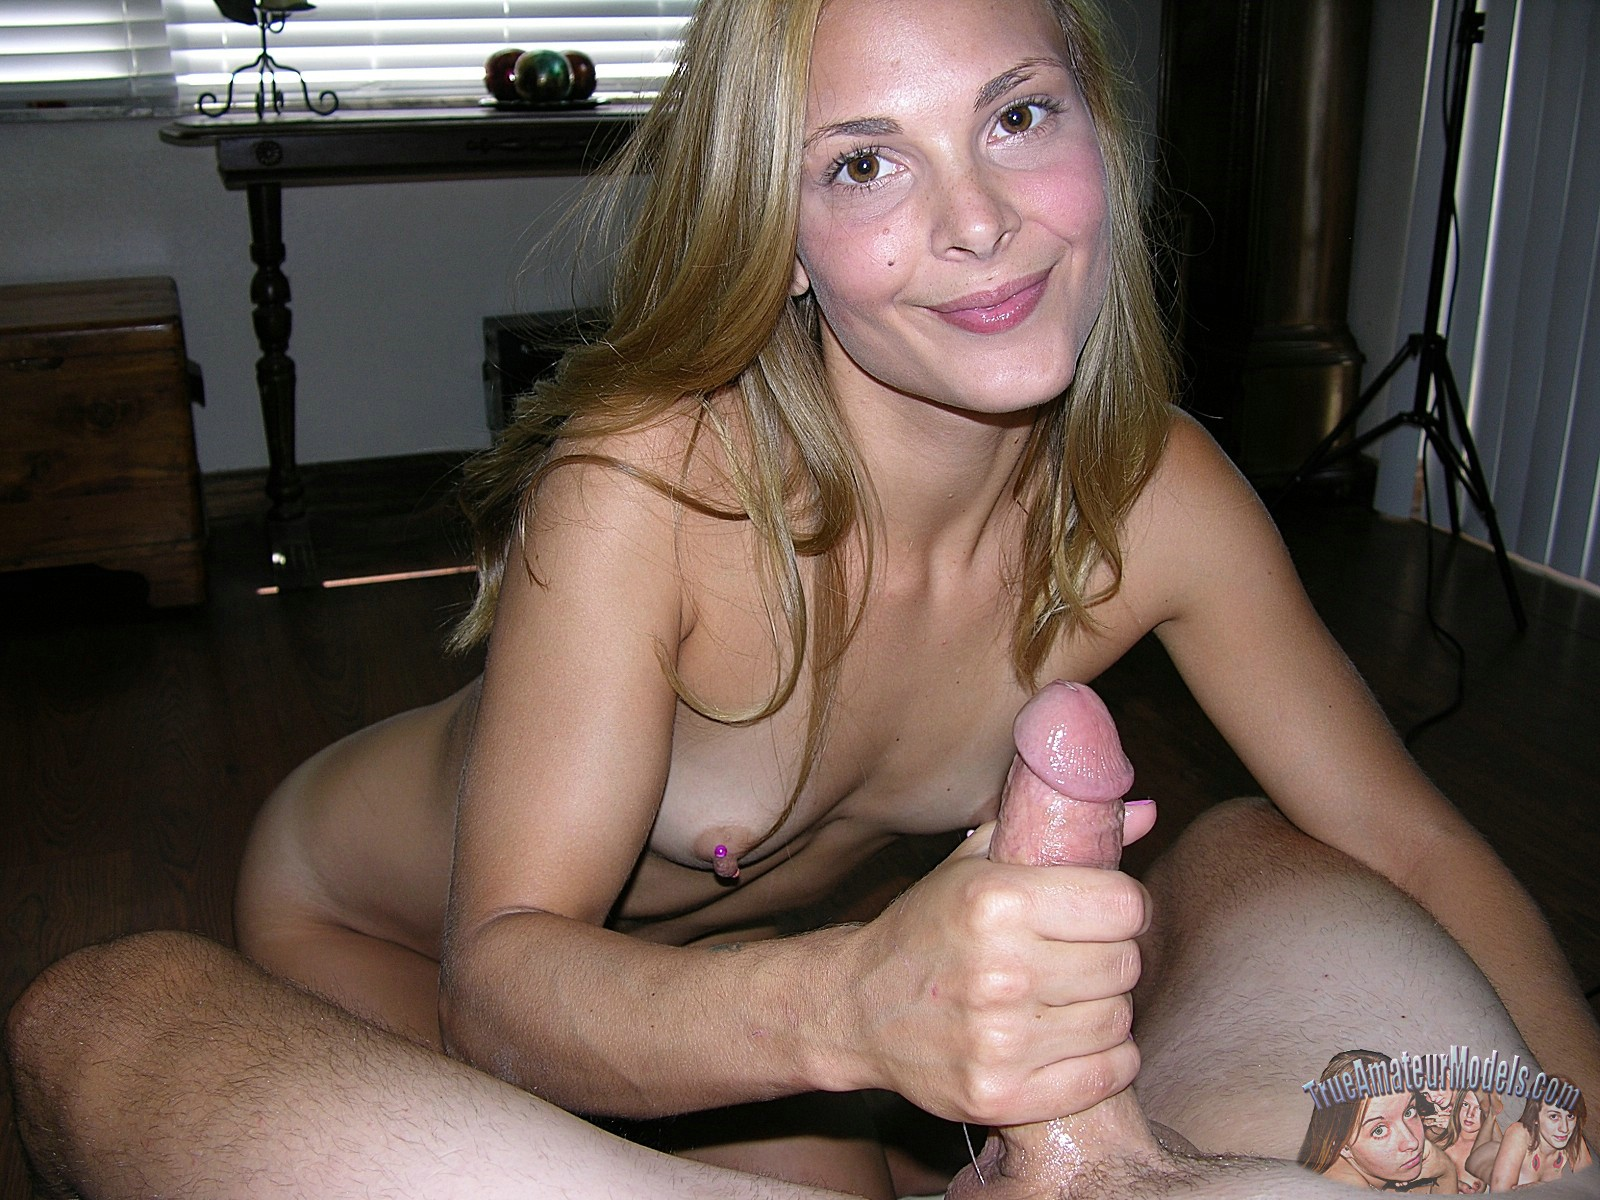 Amateur women giving handjobs